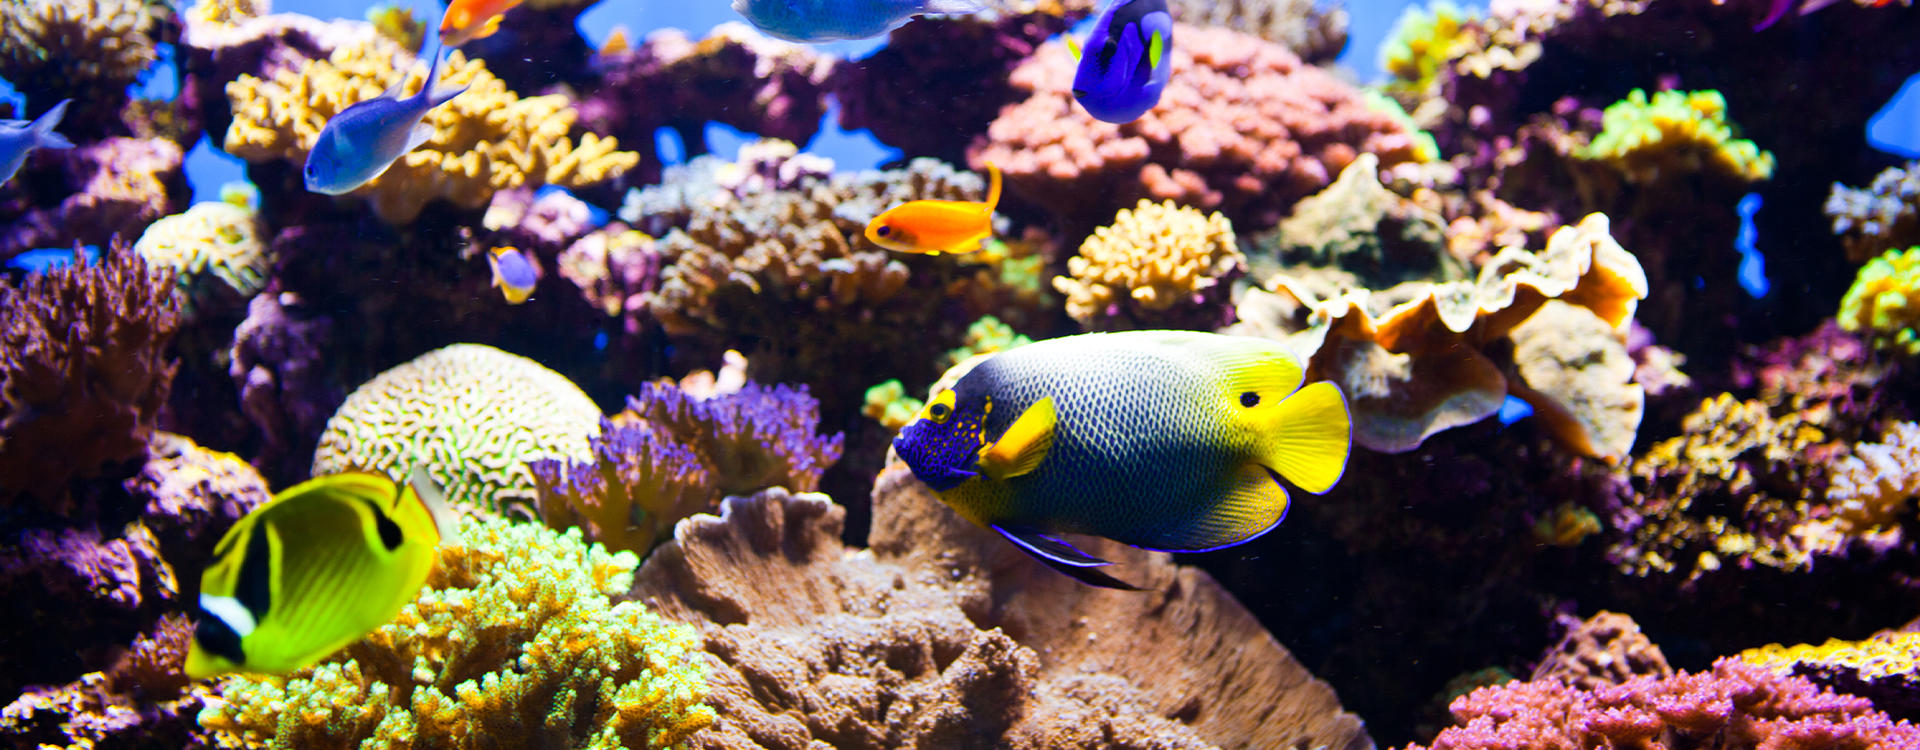 RG- Southbank - Townsville _Visit-Reef-HQ-Aquarium